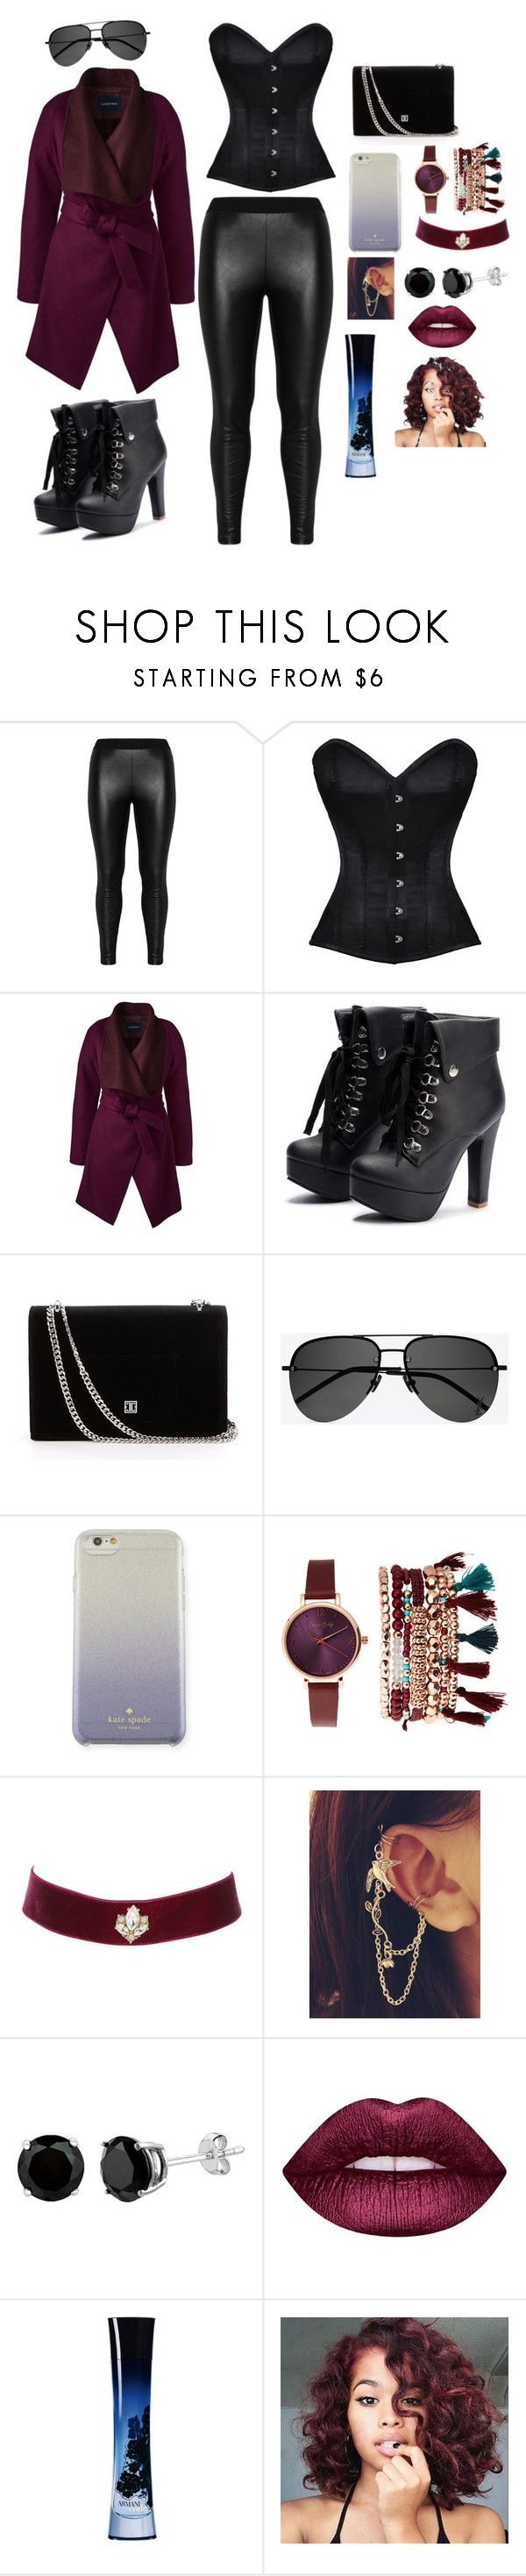 """Chic and mellow 📖✒🙏"" by o-itzchriscile ❤ liked on Polyvore featuring Zizzi, Lands' End, Yves Saint Laurent, Kate Spade, Jessica Carlyle, Charlotte Russe, Lime Crime and Giorgio Armani"